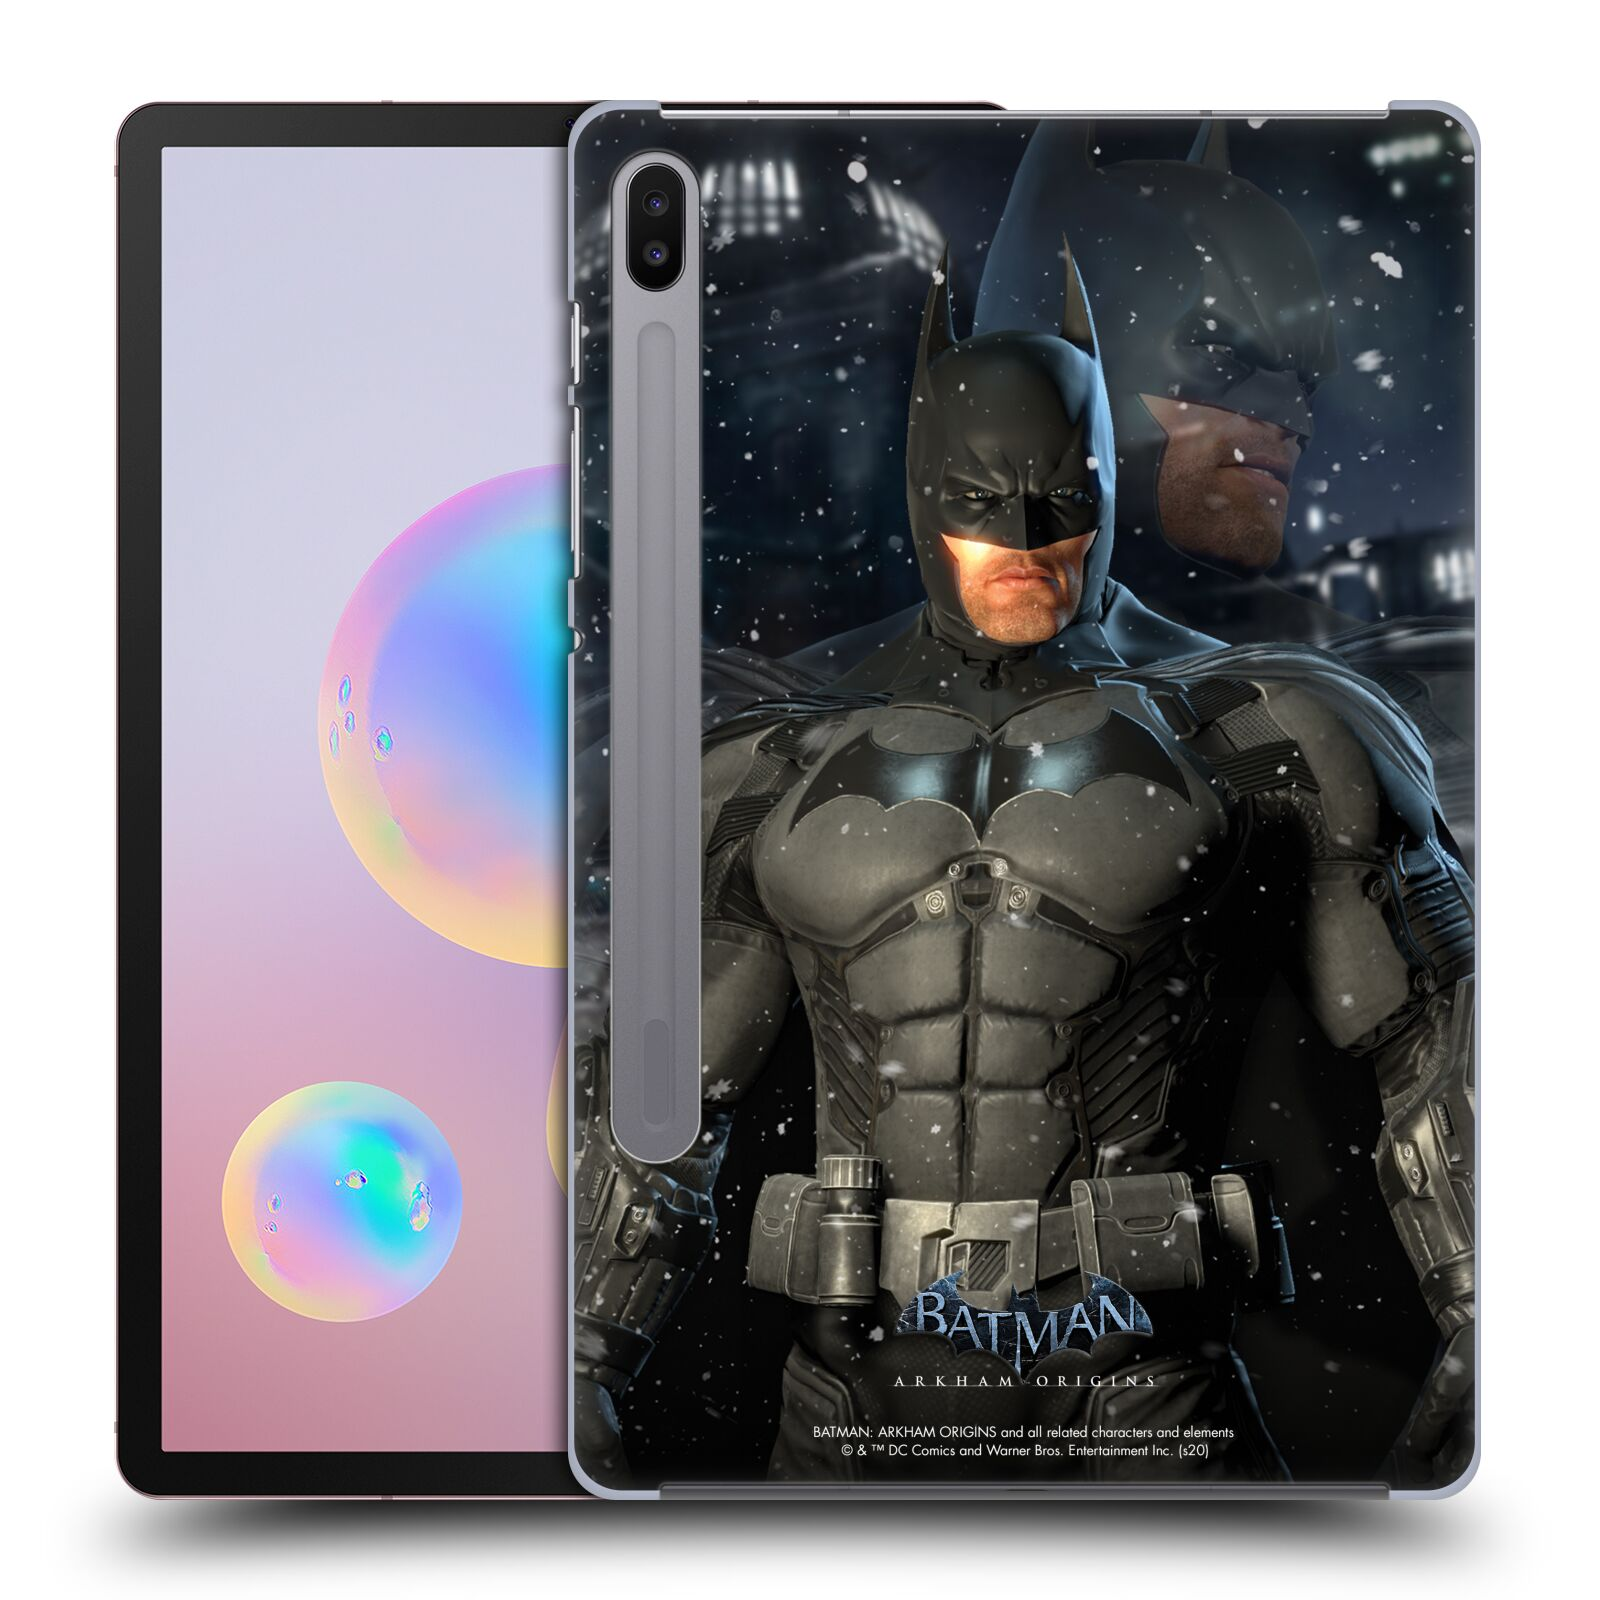 Official Batman: Arkham Origins Characters Batman Case for Samsung Galaxy Tab S6 (2019)